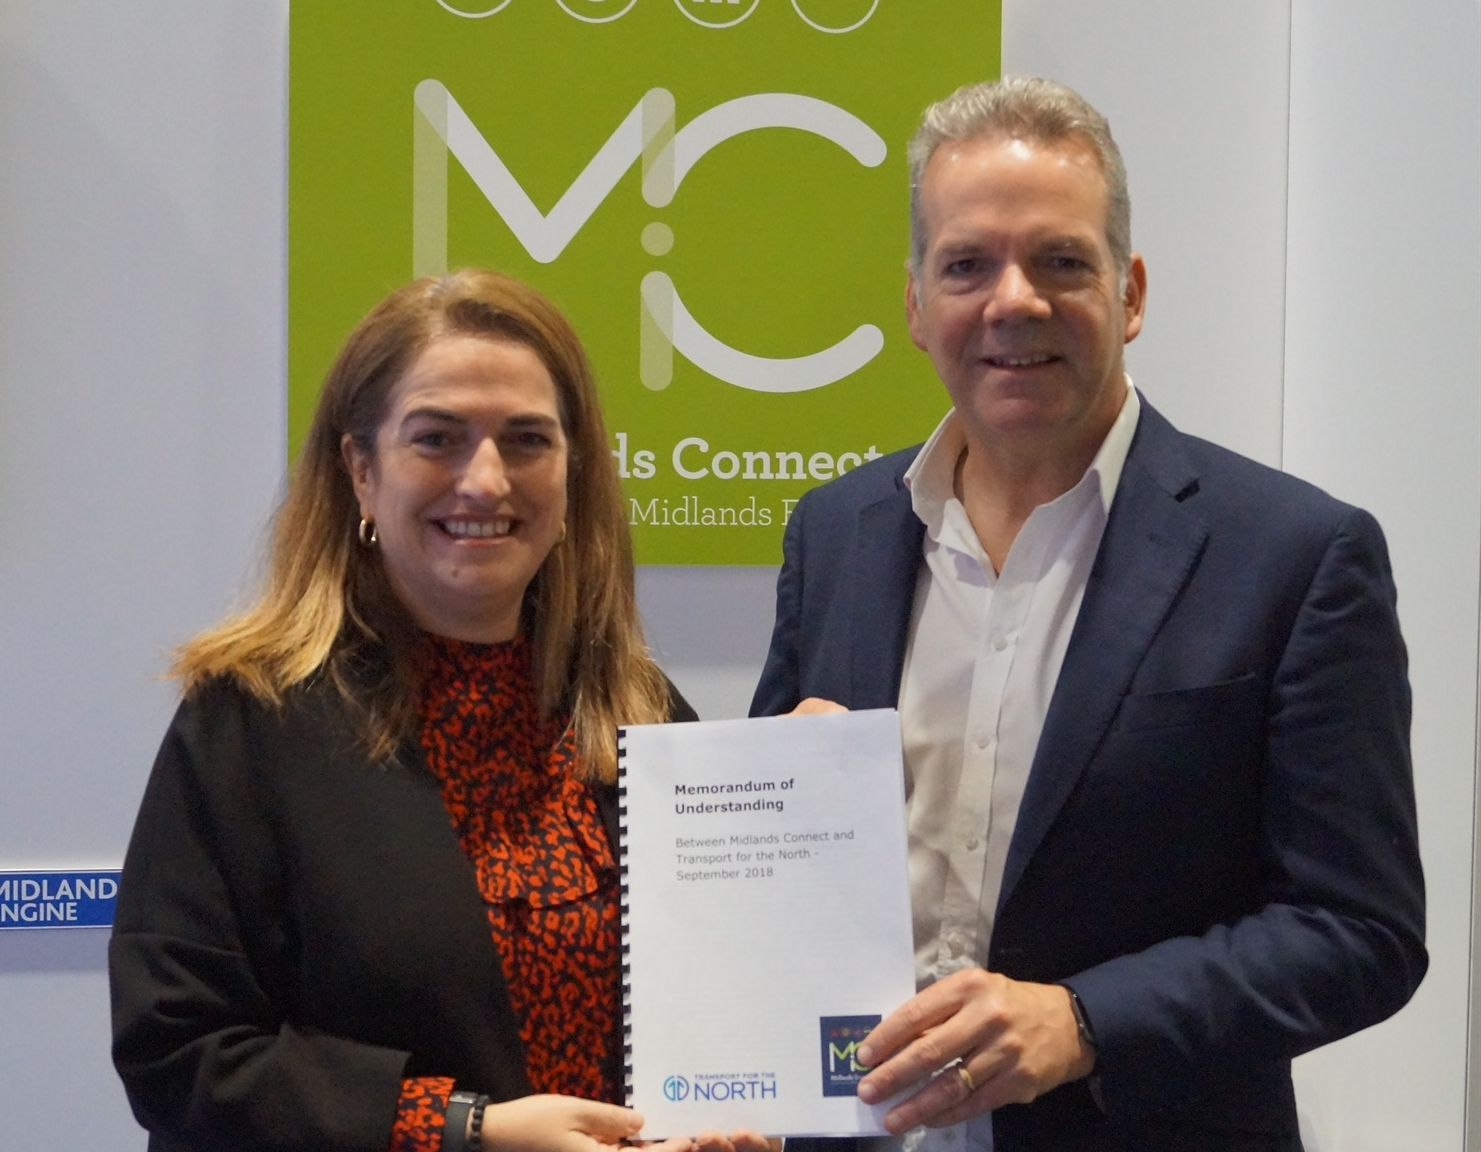 Transport for the North and Midlands Connect join forces in new MoU